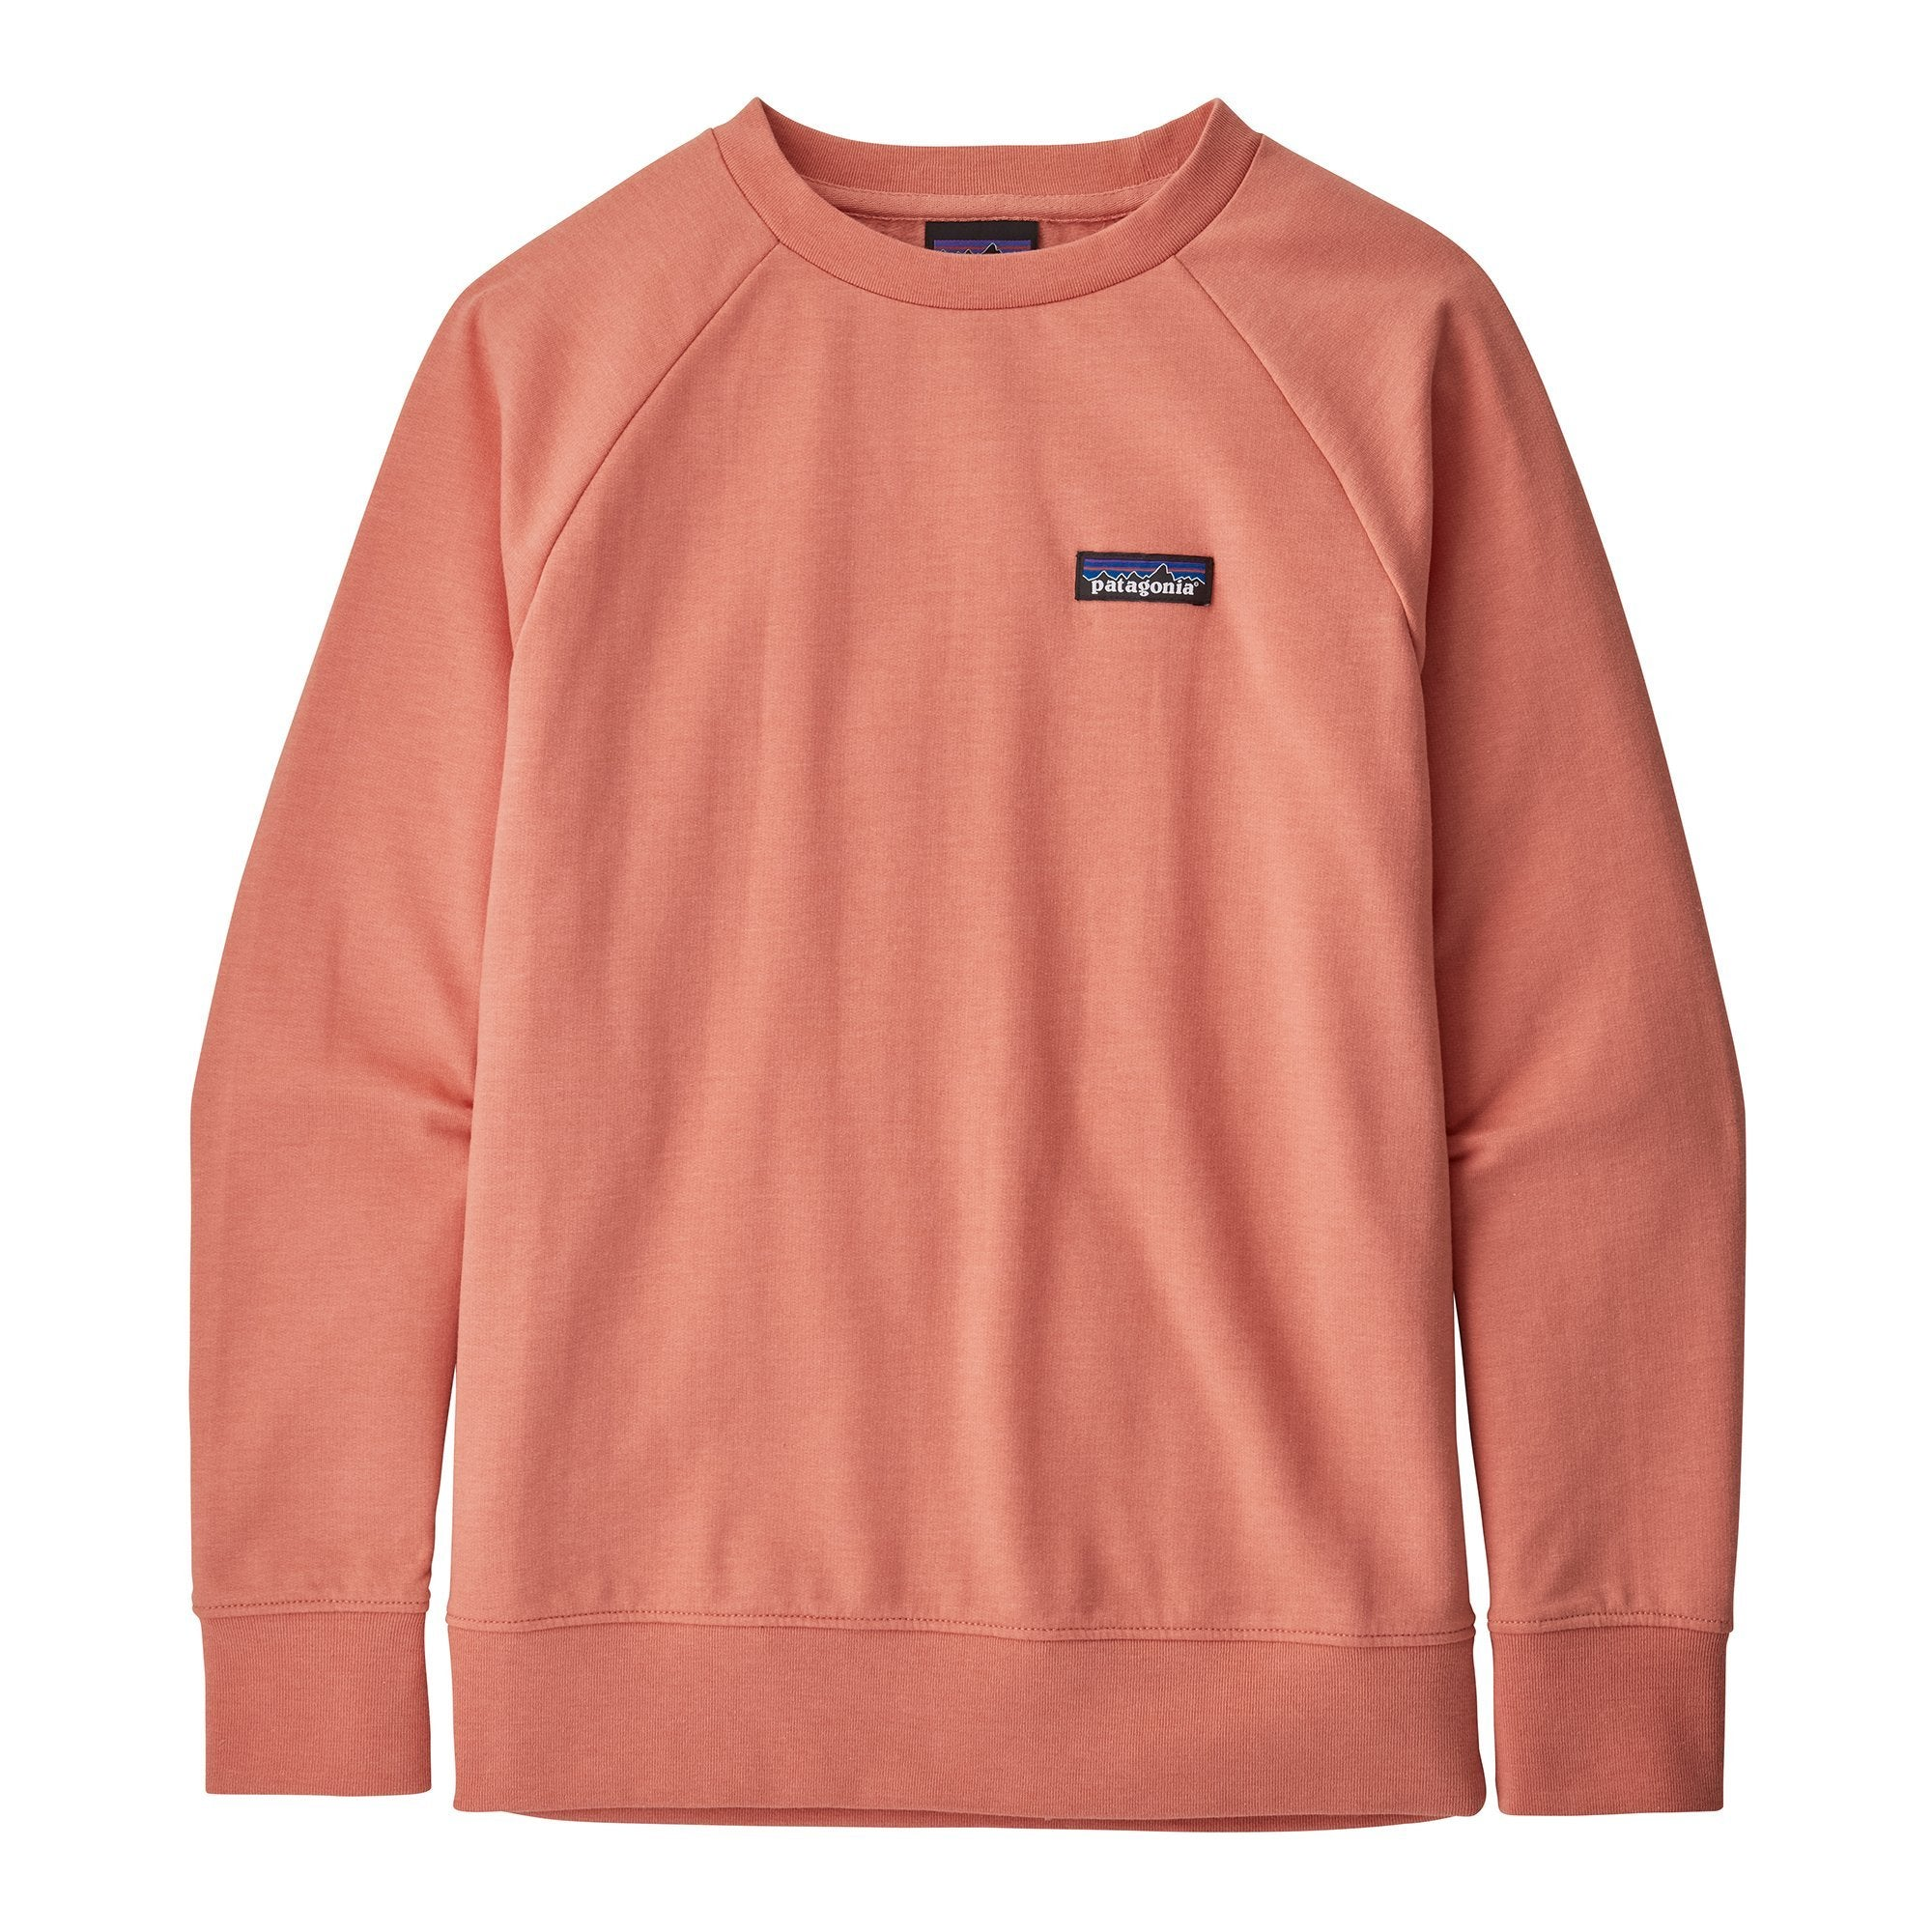 Kids Lightweight Crew Sweatshirt - Barn - Mellow Melon - Vindpinad